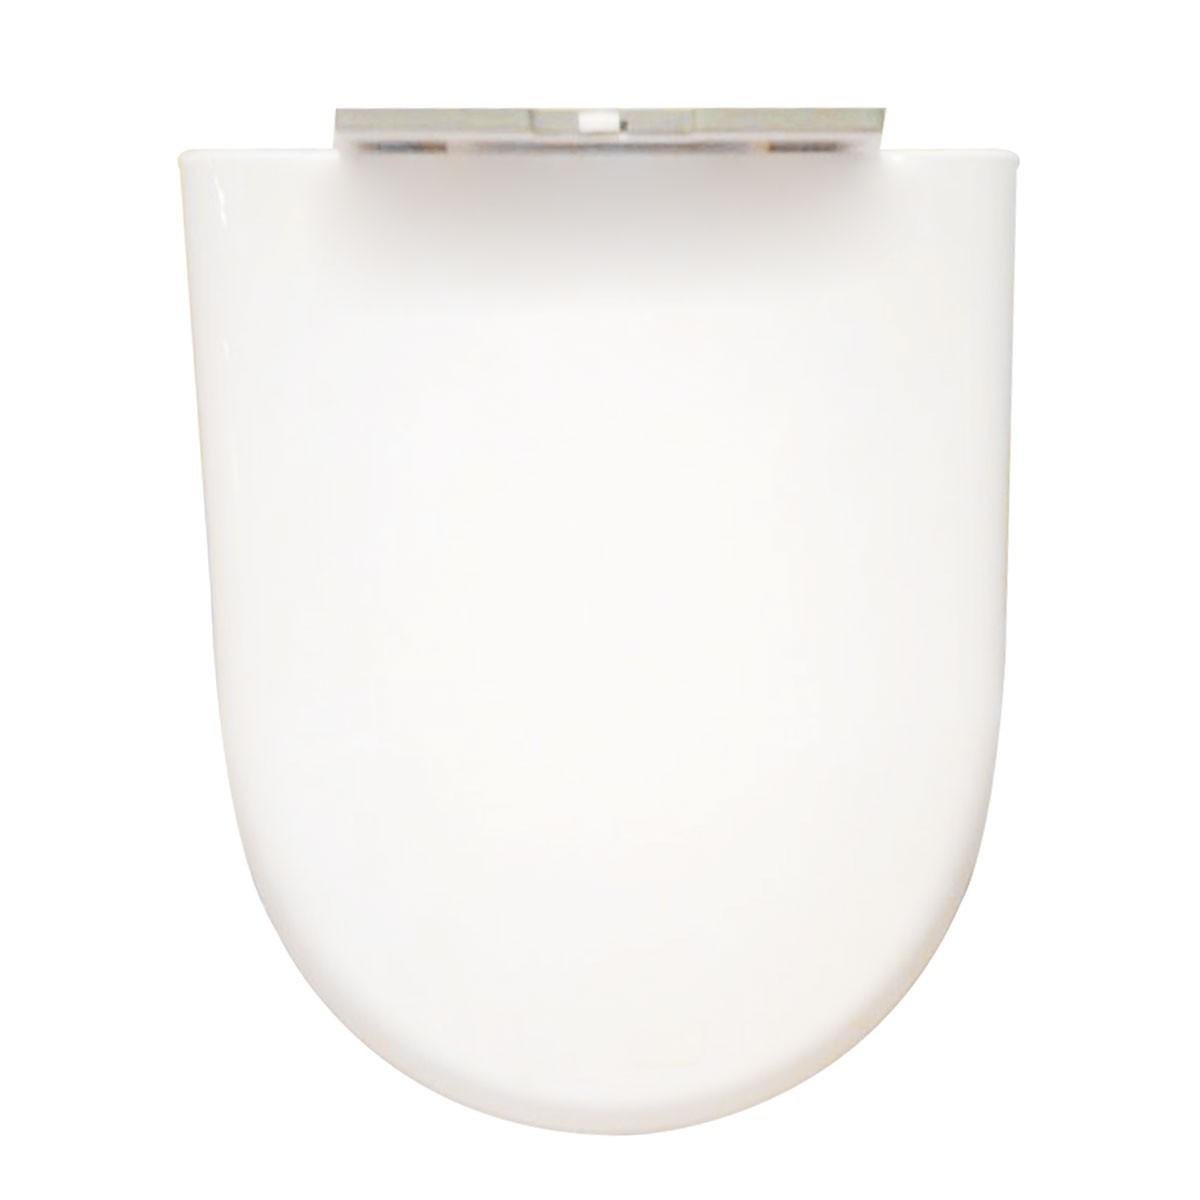 White Soft Close Toilet Seat with Cover (DK-CL-026)